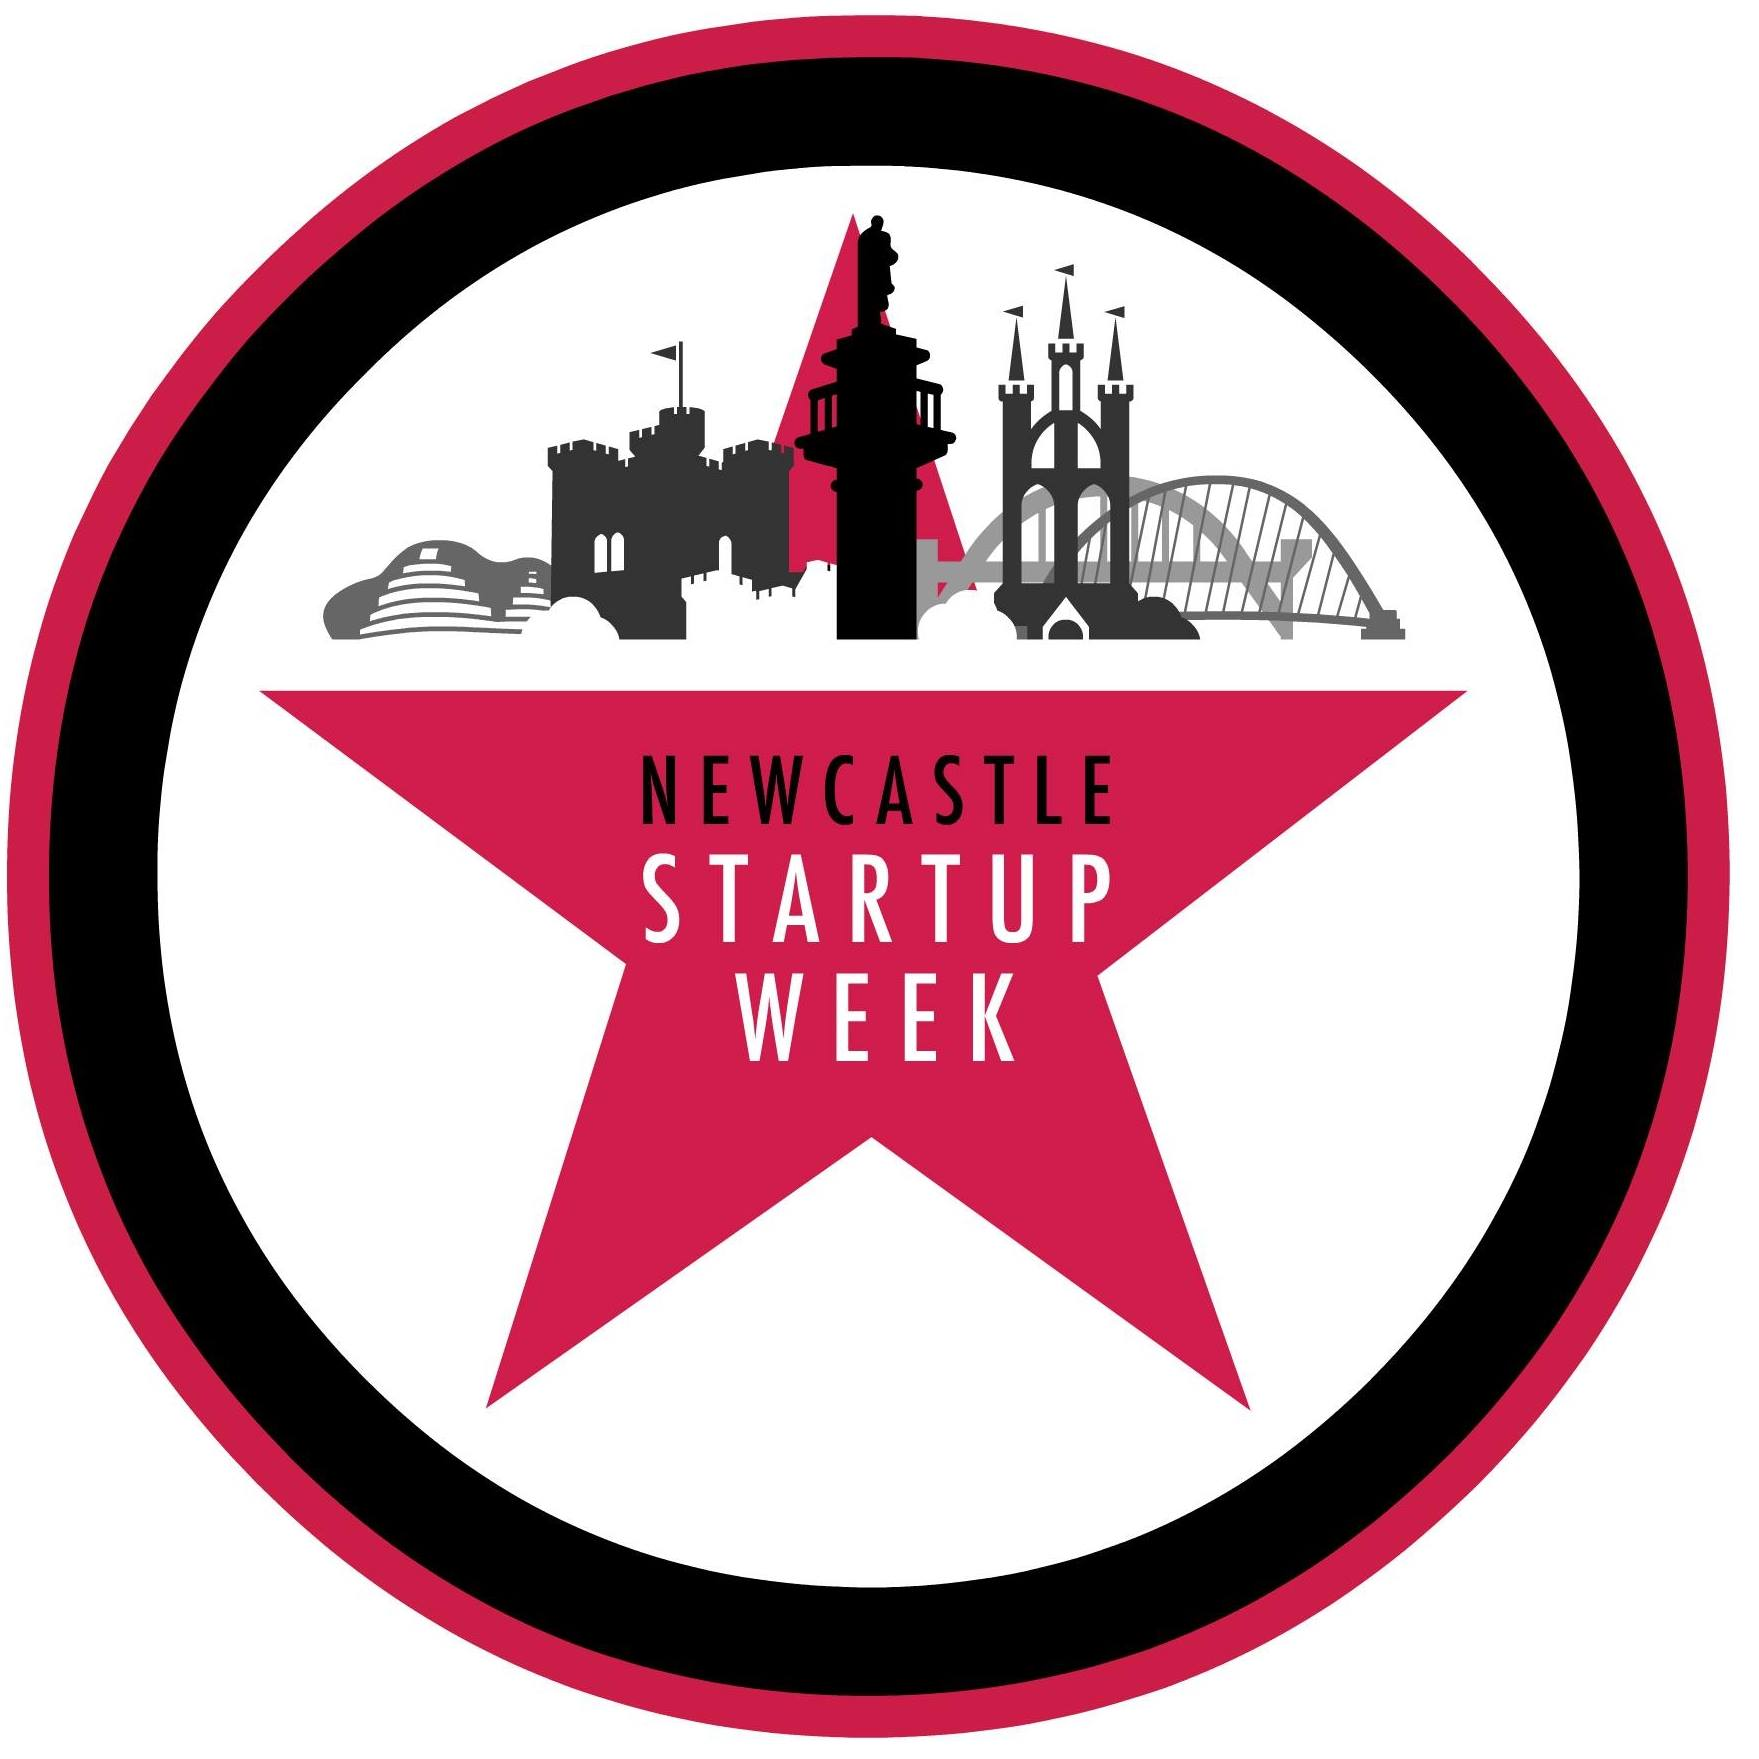 THE ROOKERY MUSIC COLLECTIVE & NEWCASTLE STARTUP WEEK -